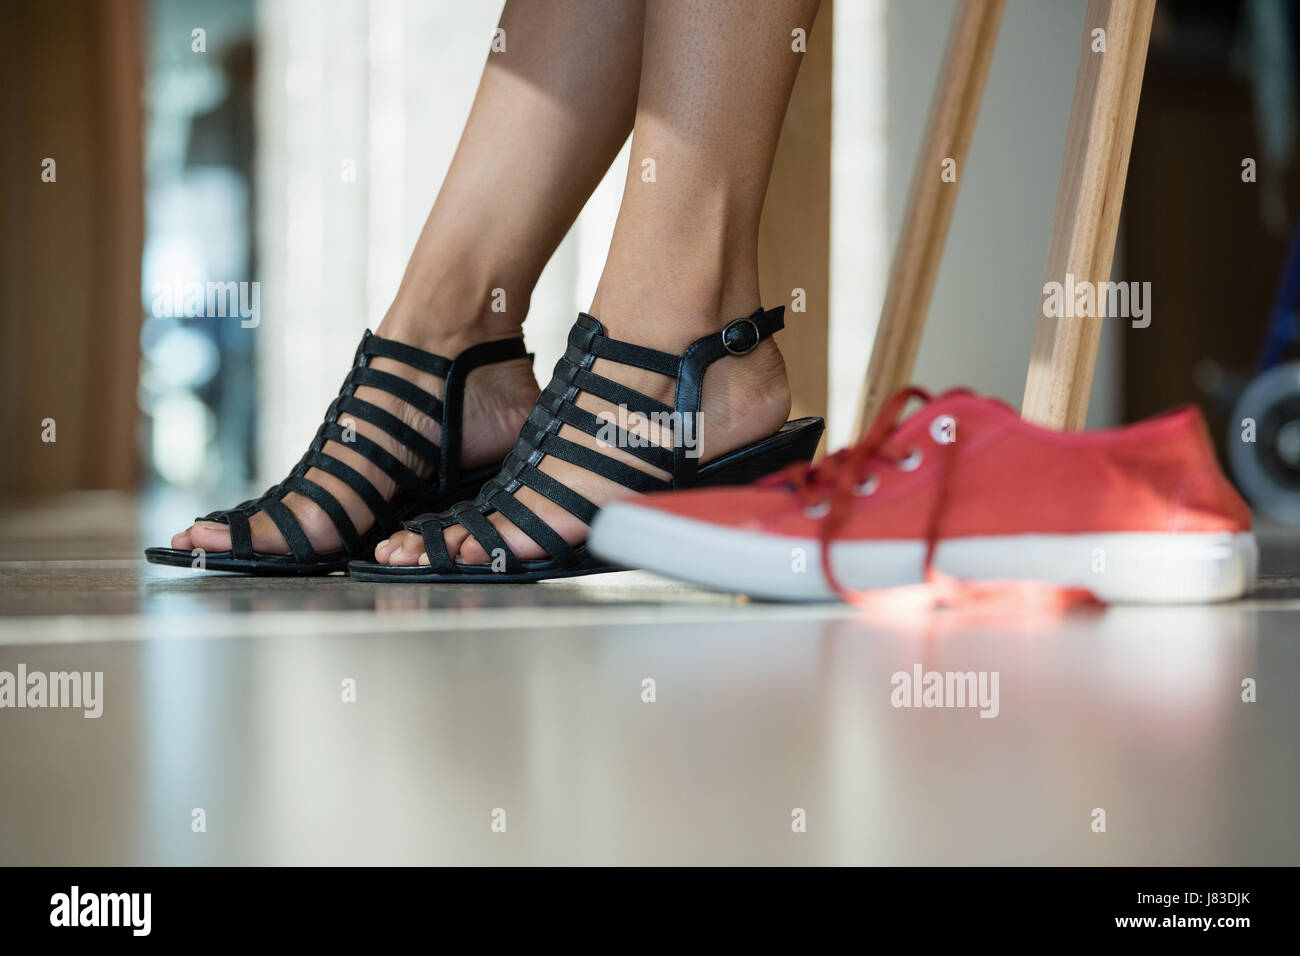 Low section of woman wearing black sandal in office - Stock Image